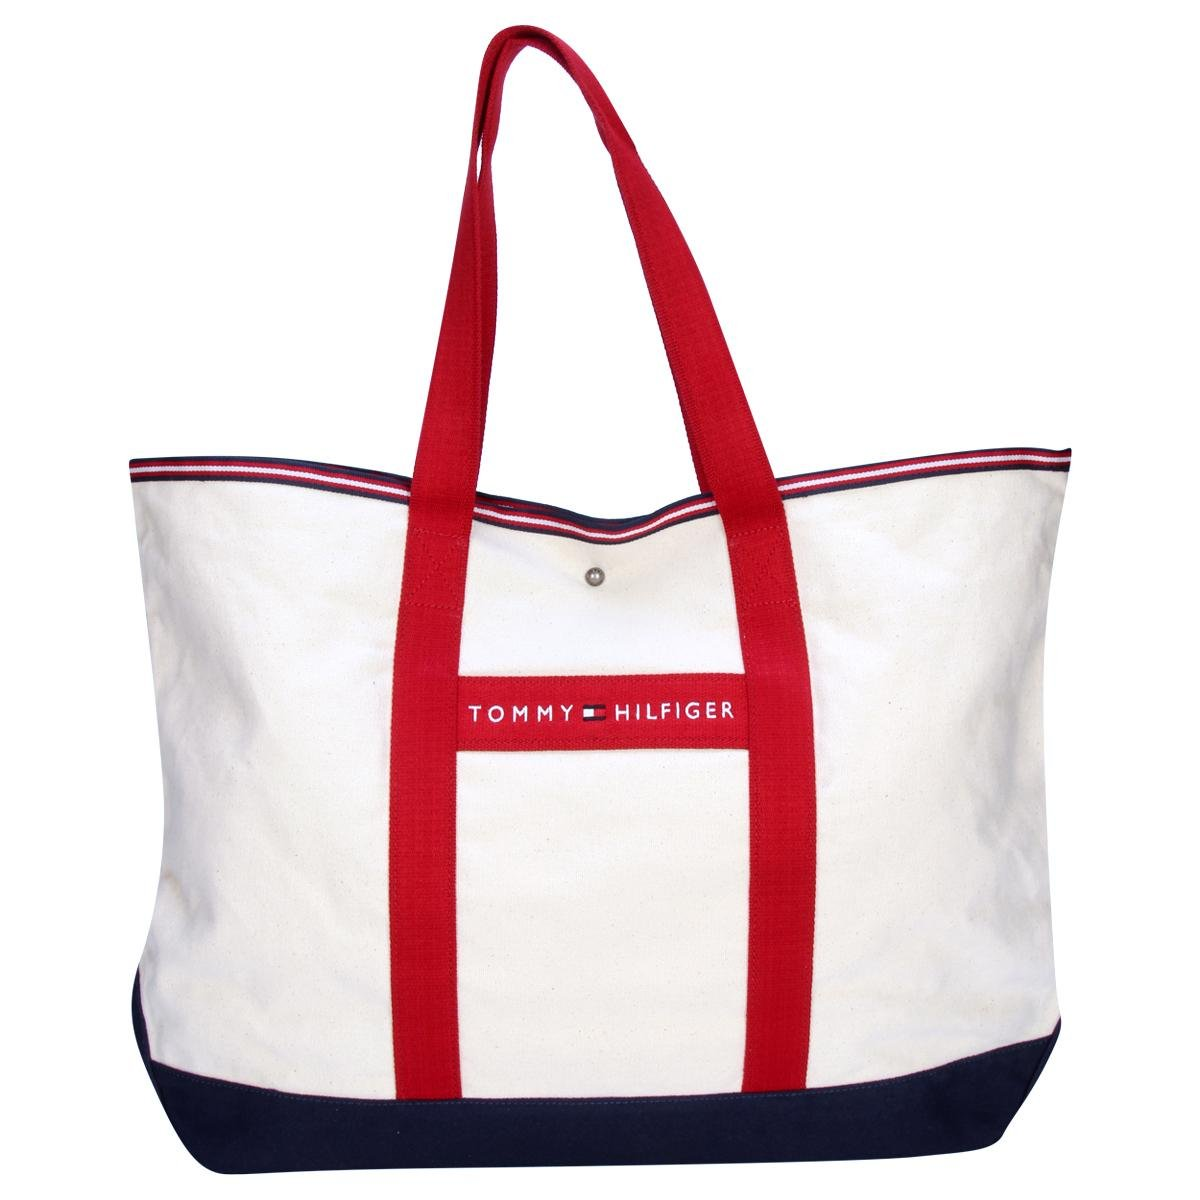 33a5d1f2f Bolsa Tote Tommy Hilfiger Sport Large | Netshoes